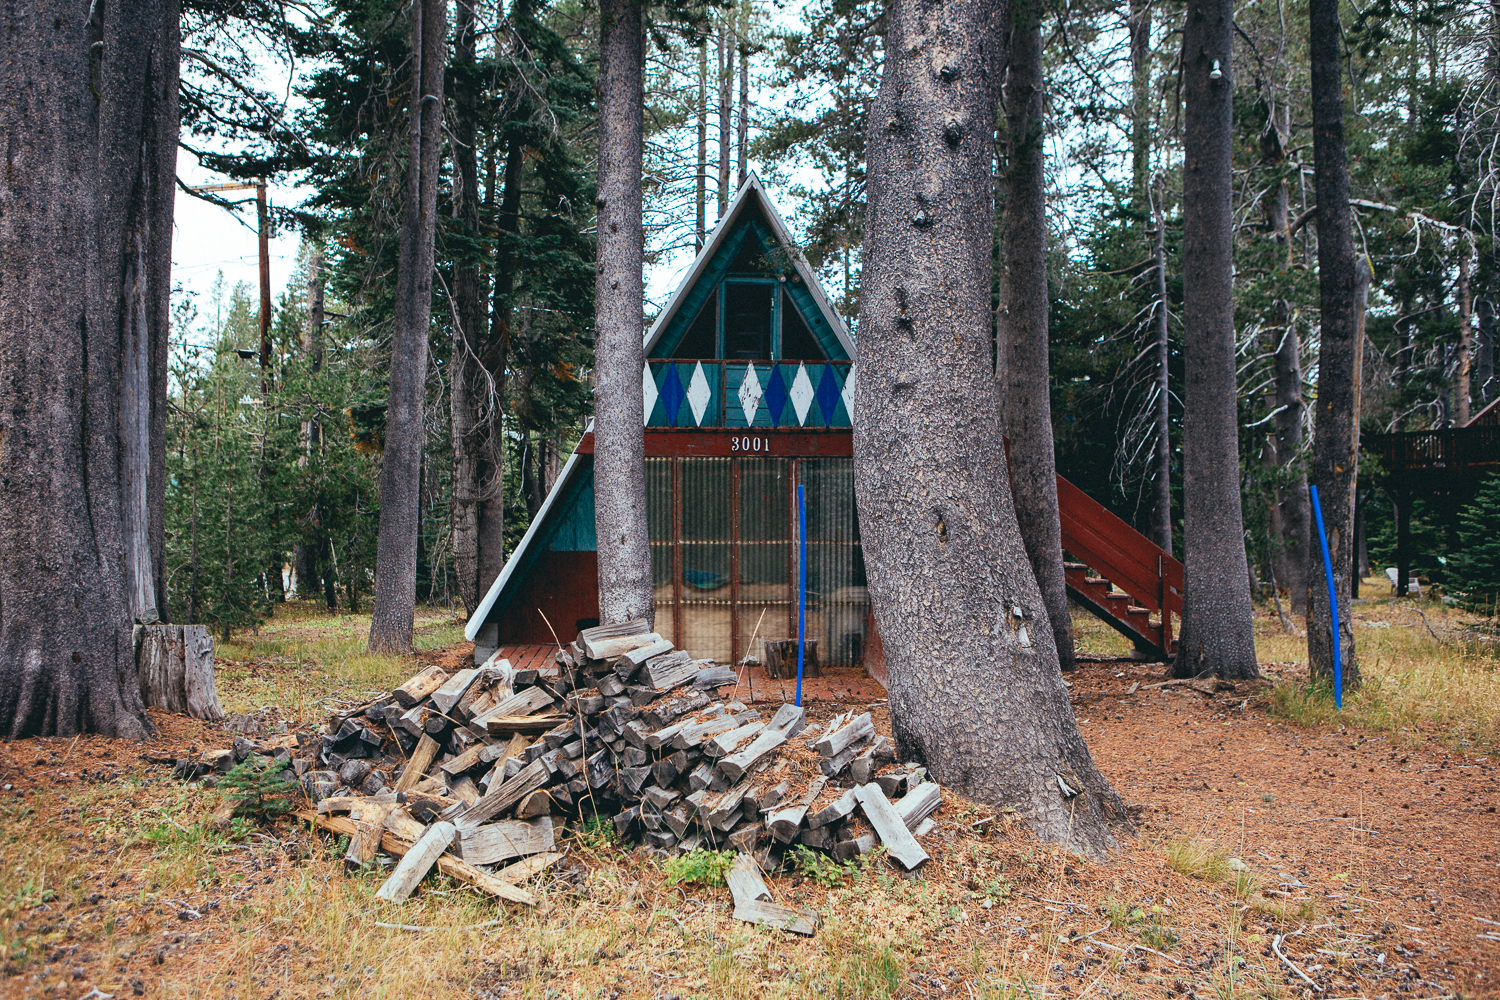 There's always been something about A-frame cabins that I've been attracted to. I went on a little search, actually a detailed hunt in the area to find and document them.This one, I want so bad.